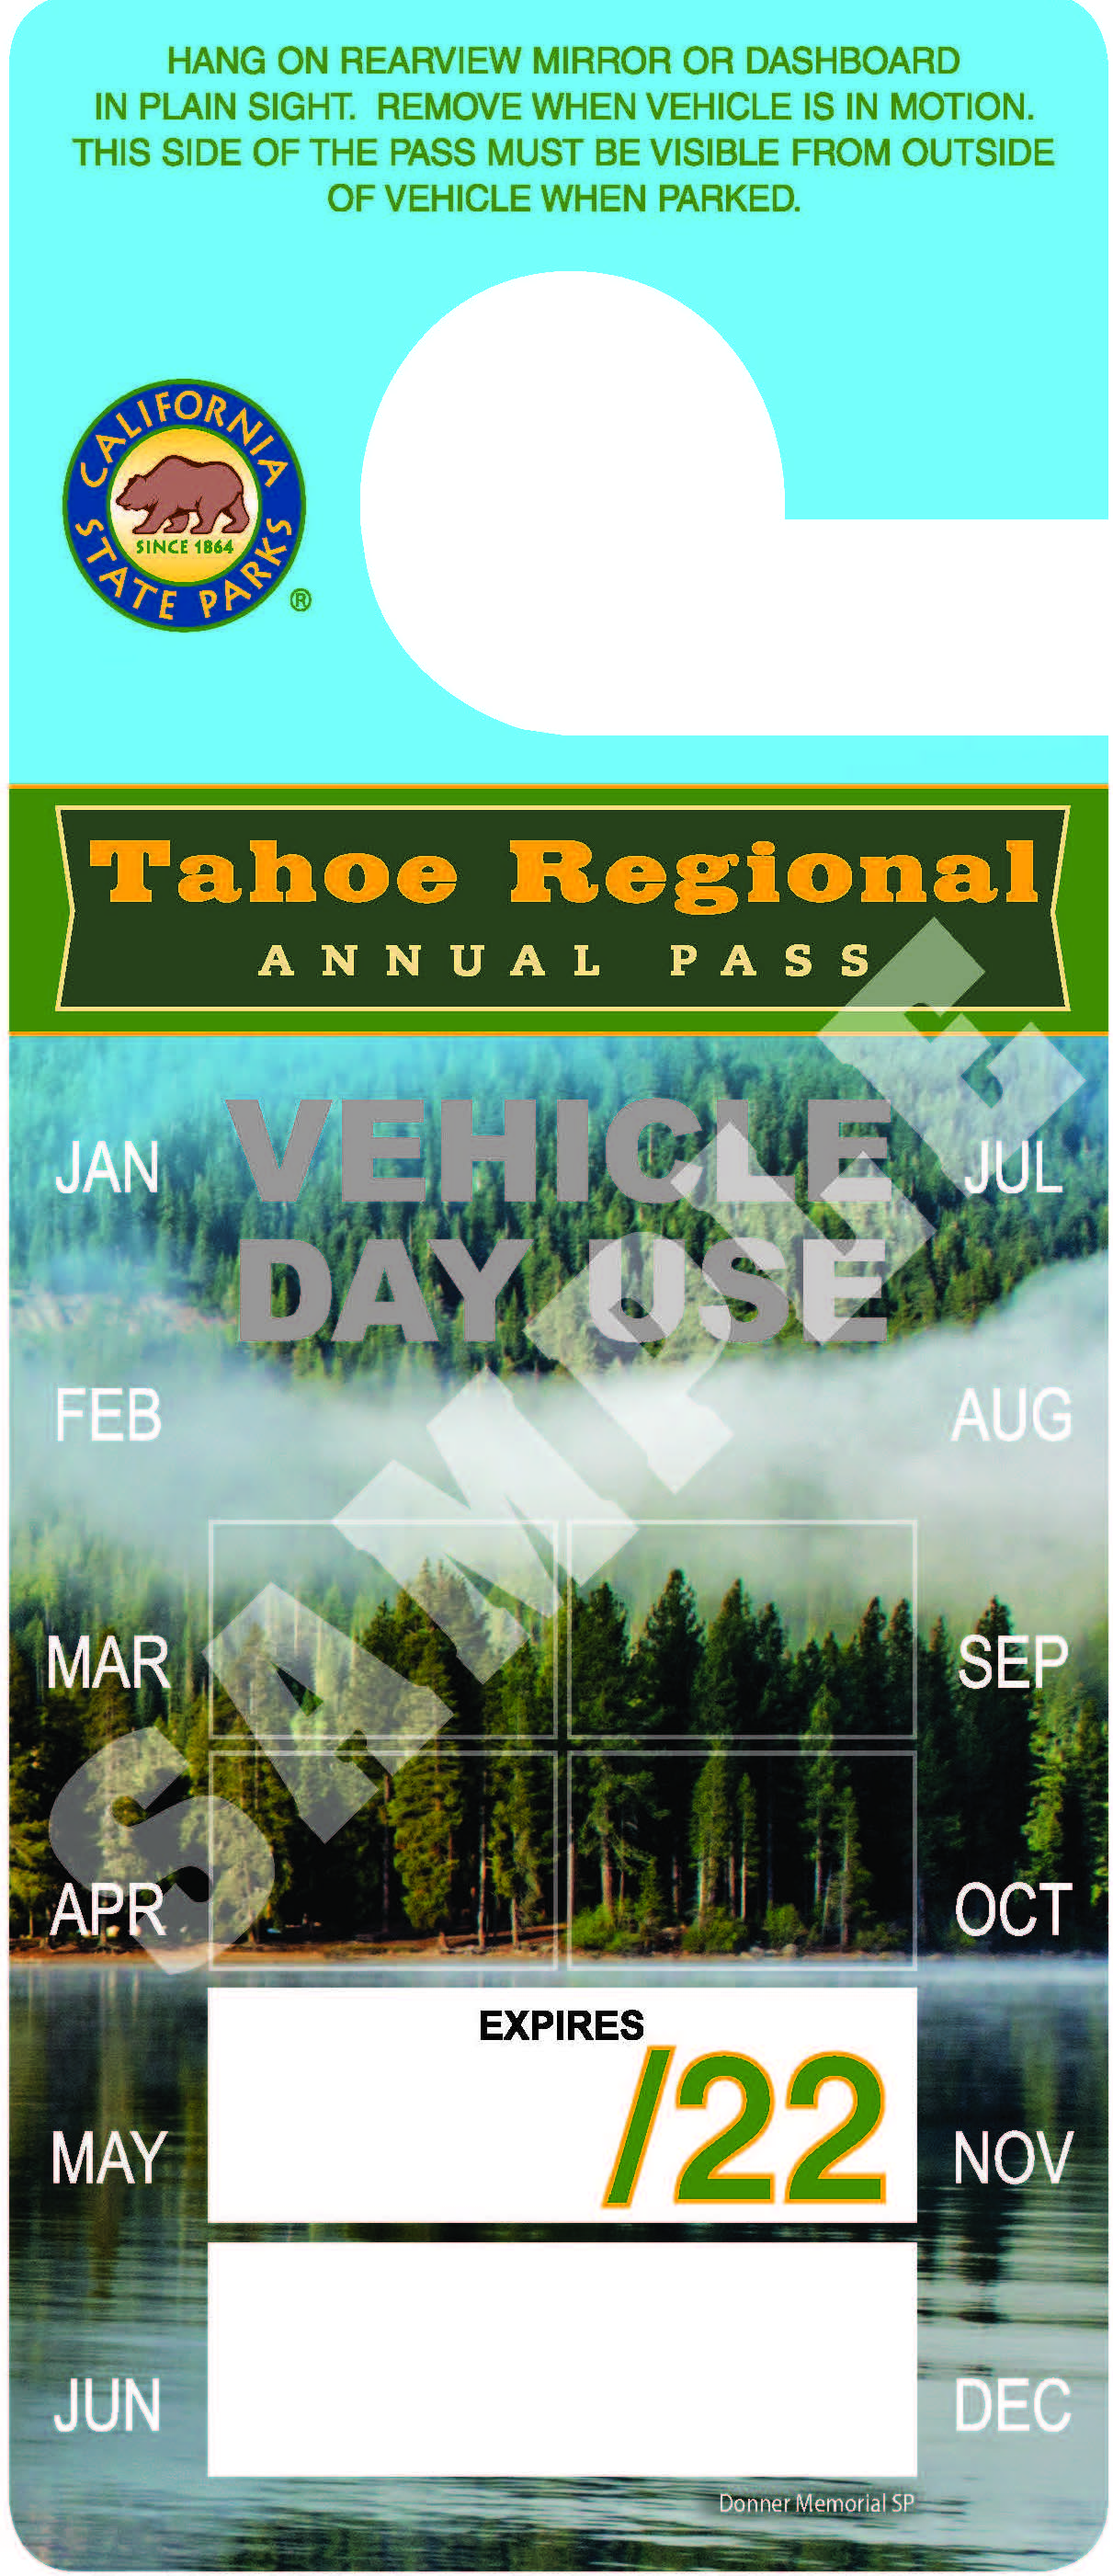 Tahoe Regional Annual Park Pass Image